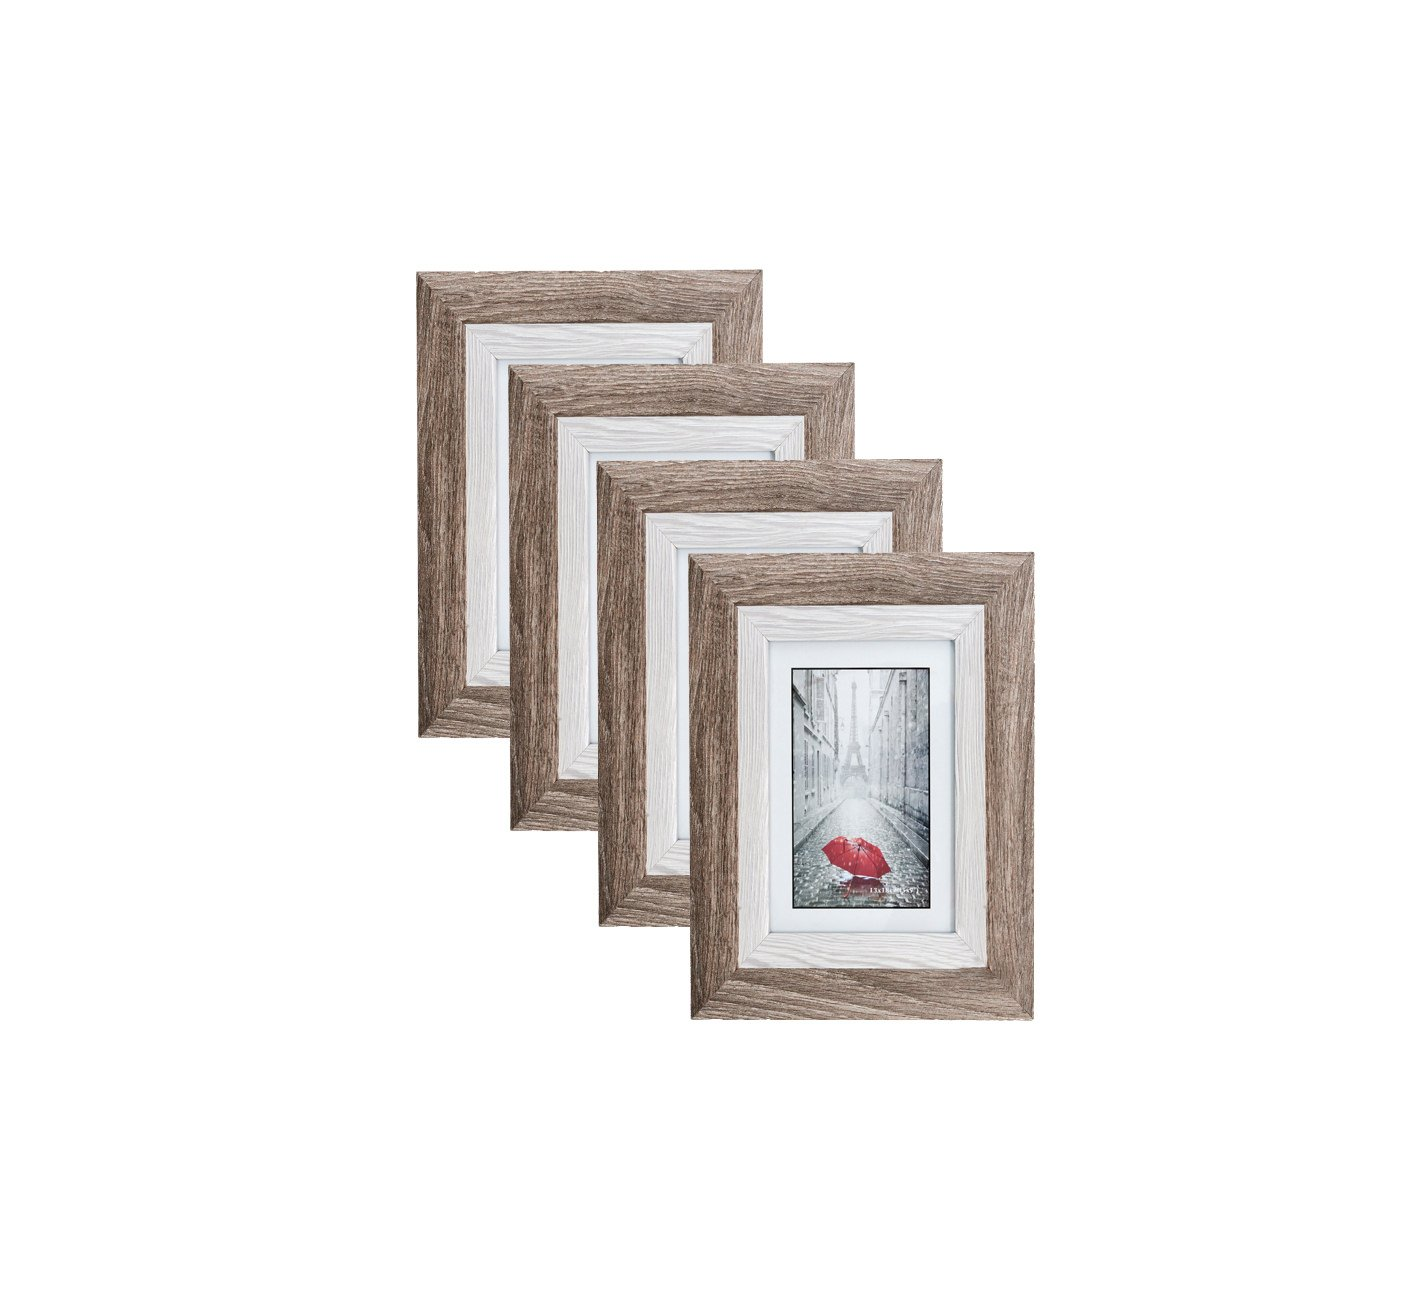 Distressed Brown MDF Wood Picture Frame 4X6 (4 pc) Display with Photo Glass Front, Easel Back, and Wall Hang Clip | 4 Piece Set by Lambert Frame